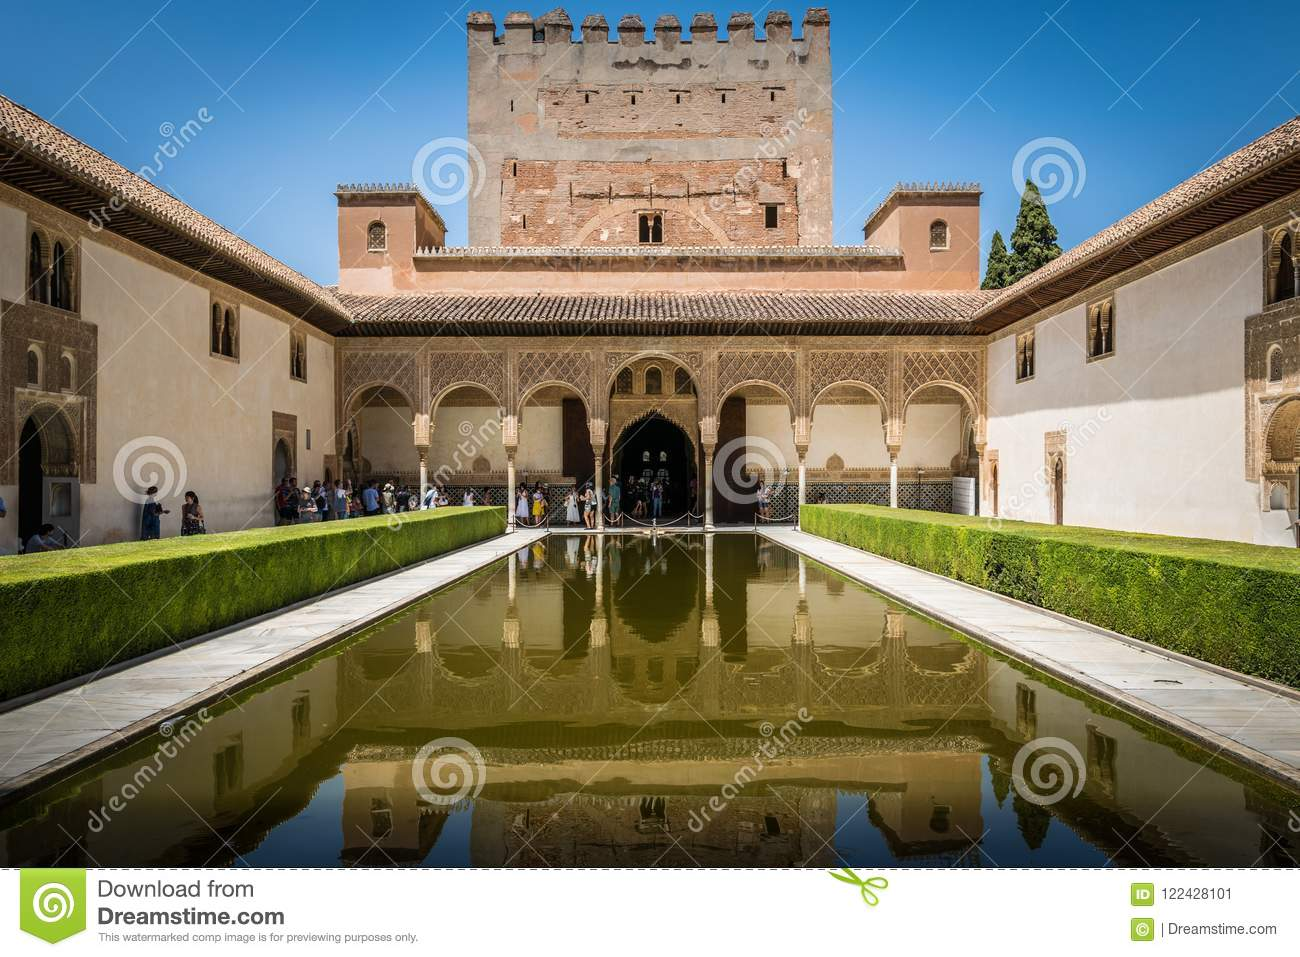 Alhambra Palace courtyard pool in Granada, Andalusia, Spain.